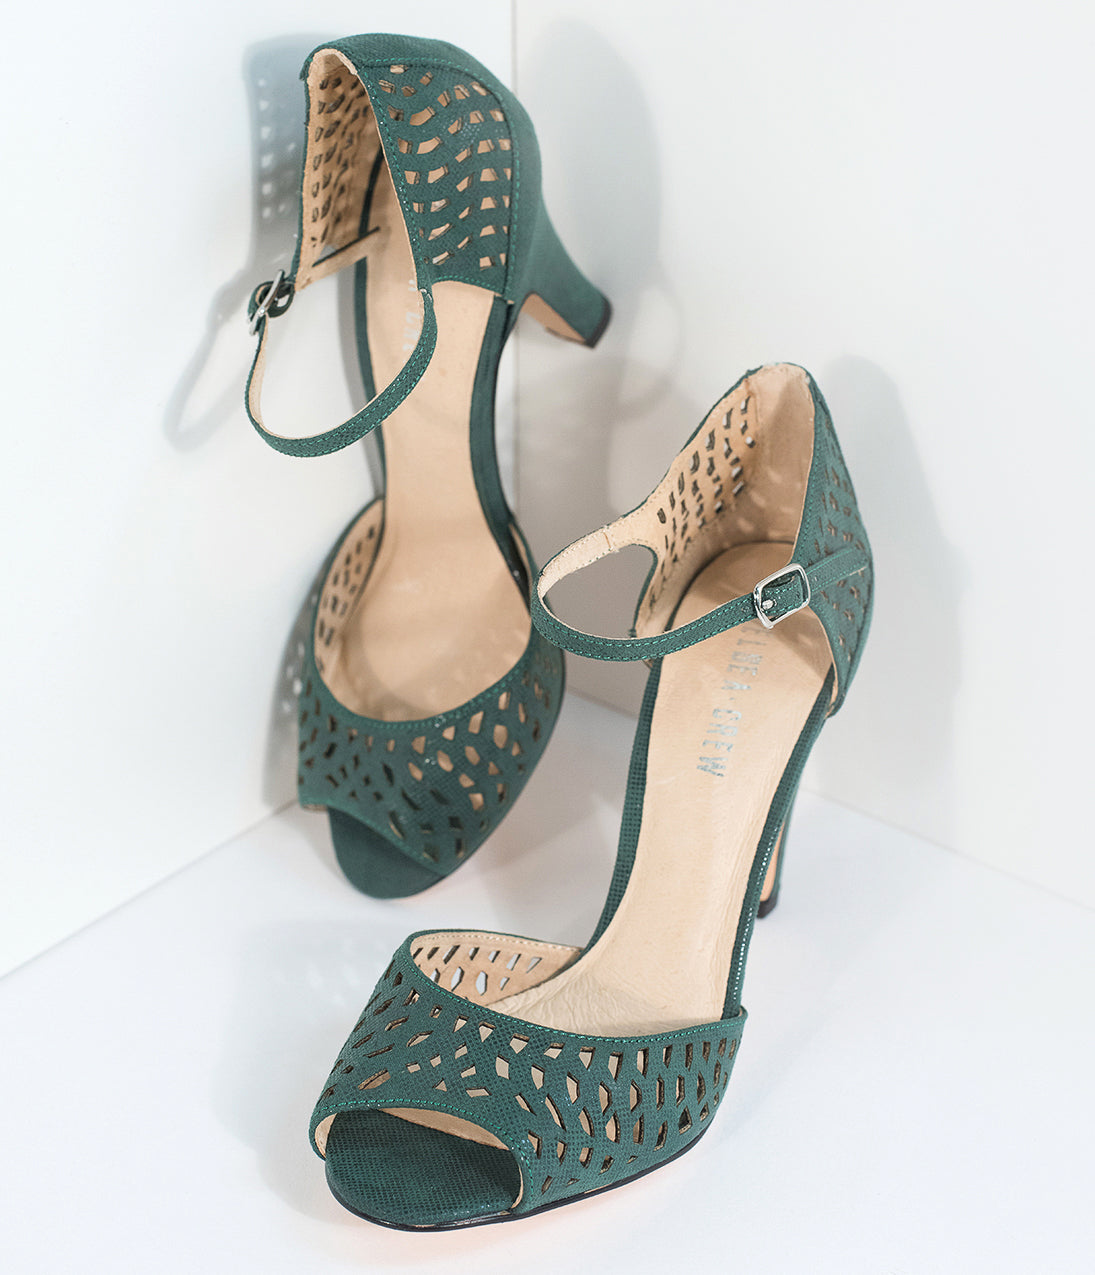 1950s Style Shoes Emerald Green Peep Toe Dorsay Liza Heels $64.00 AT vintagedancer.com